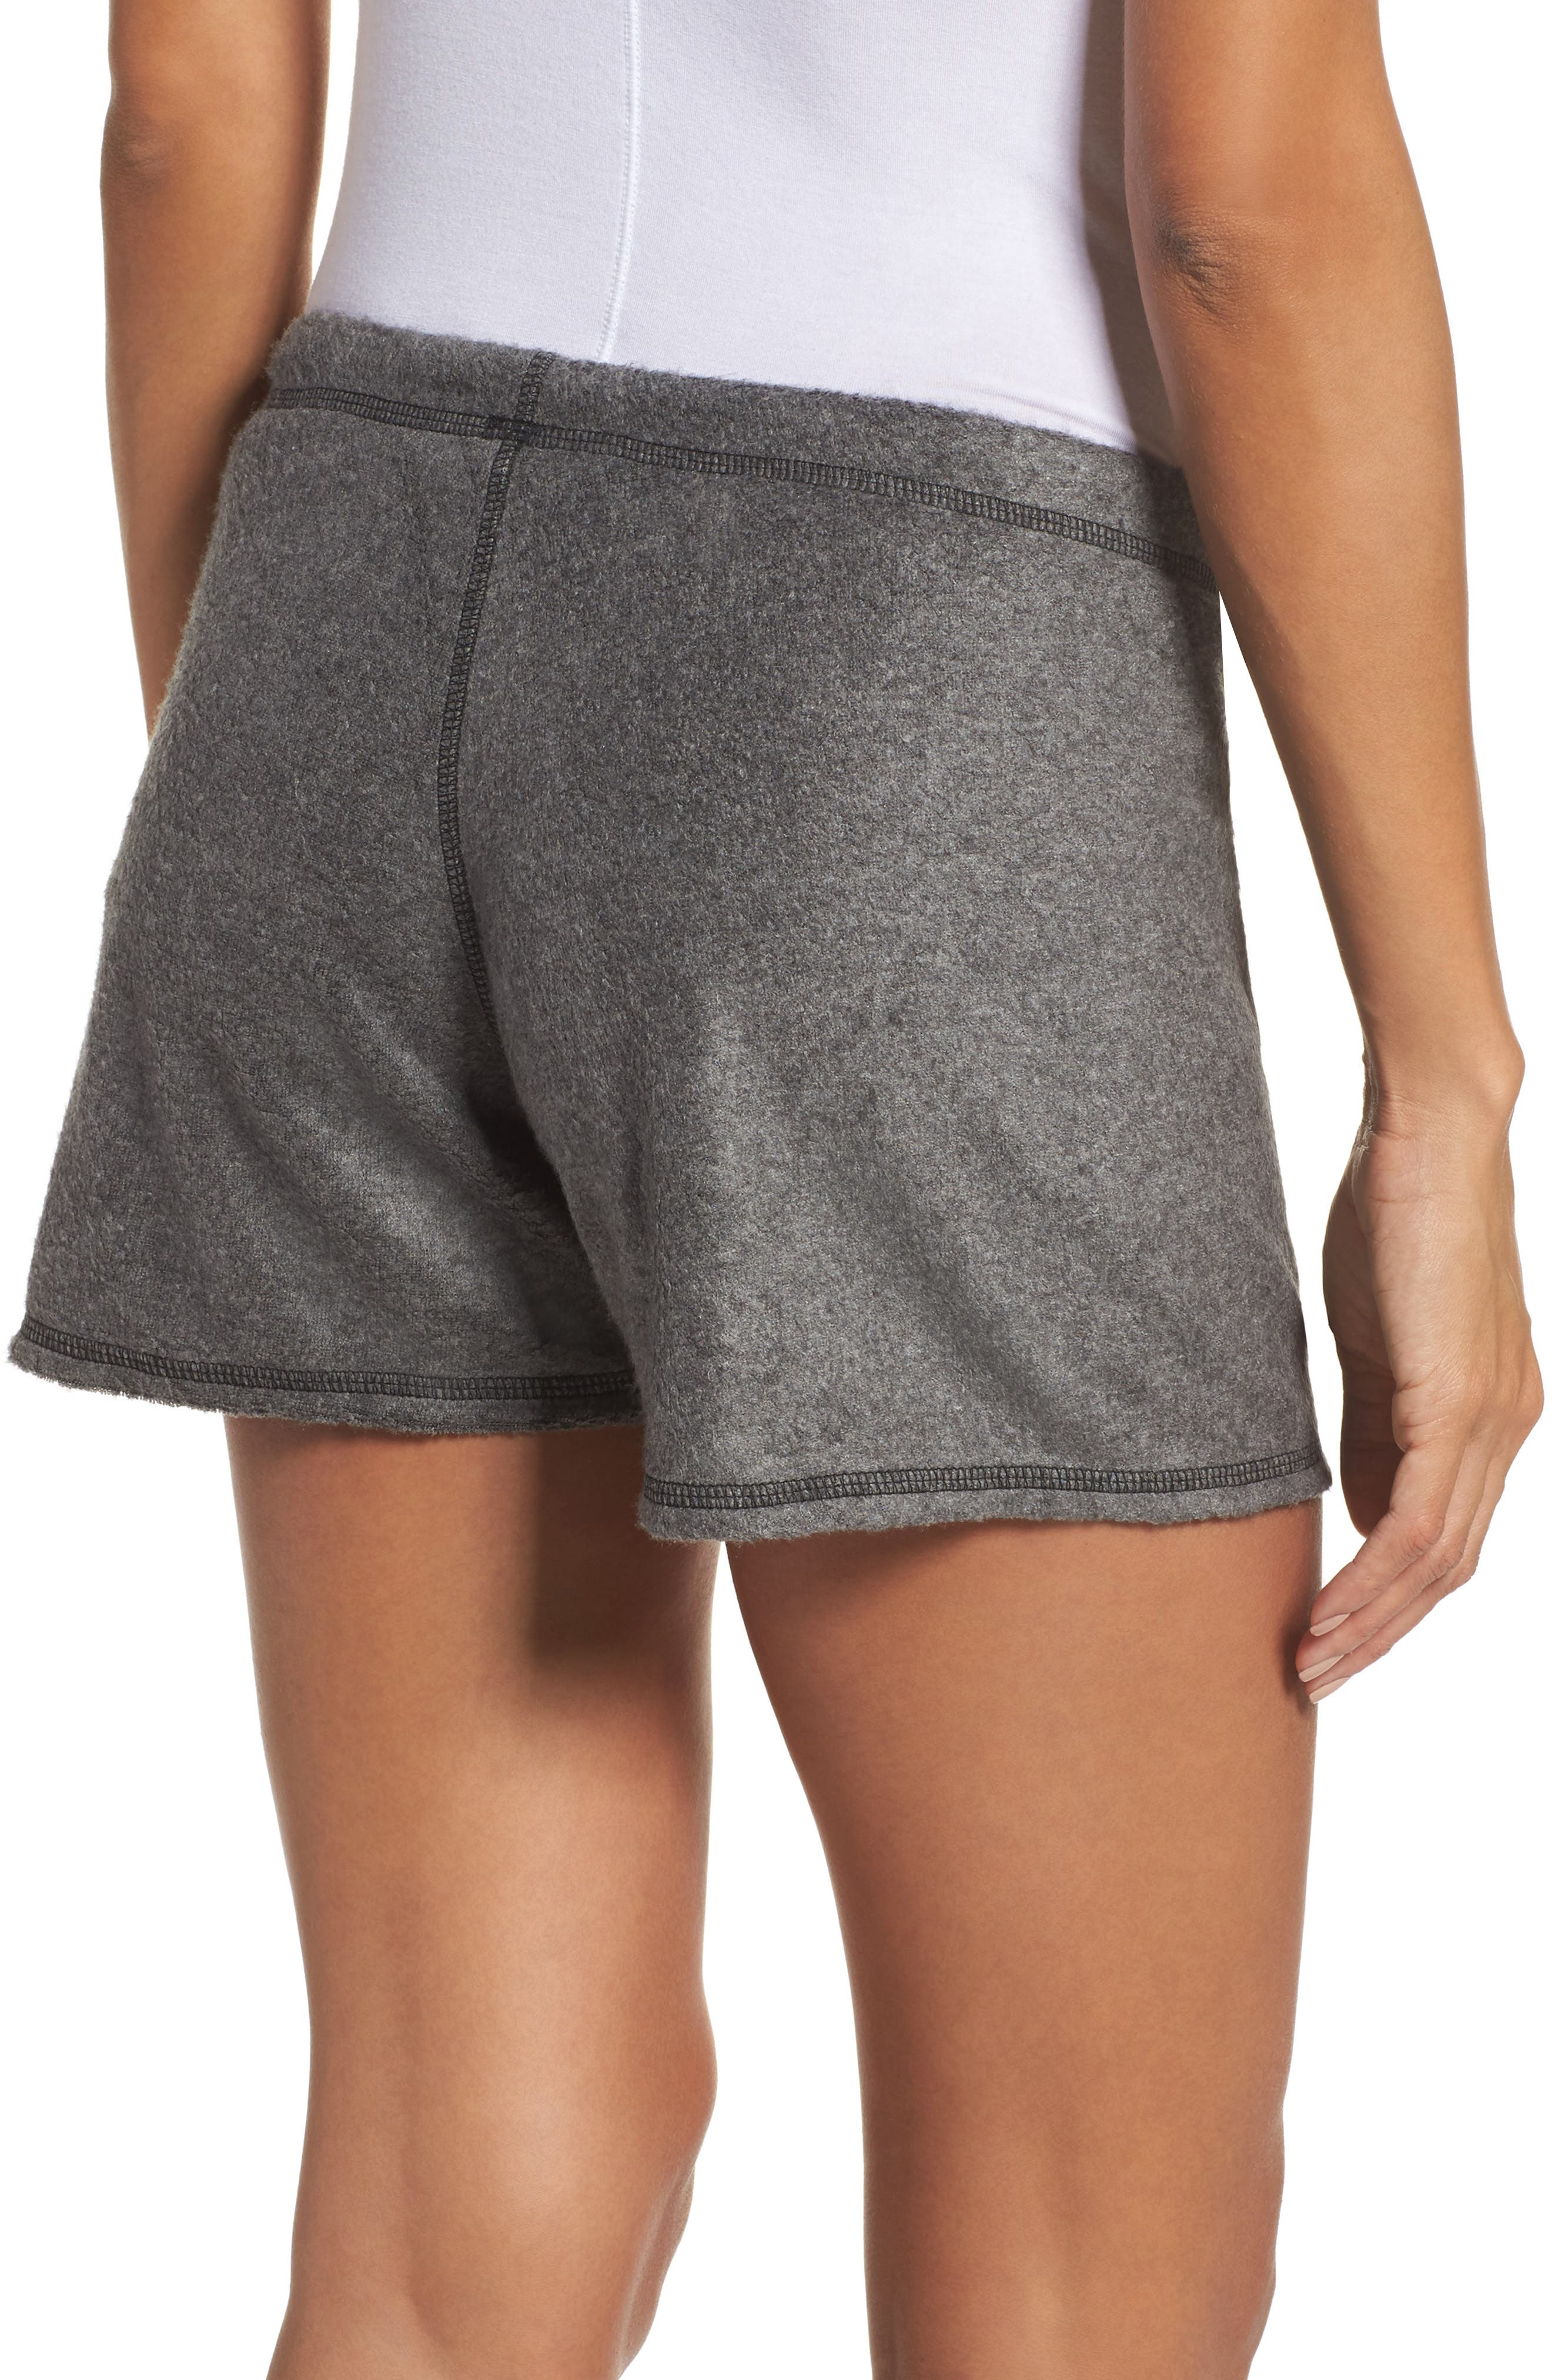 Traci Fleece Lounge Shorts,                             Alternate thumbnail 2, color,                             020